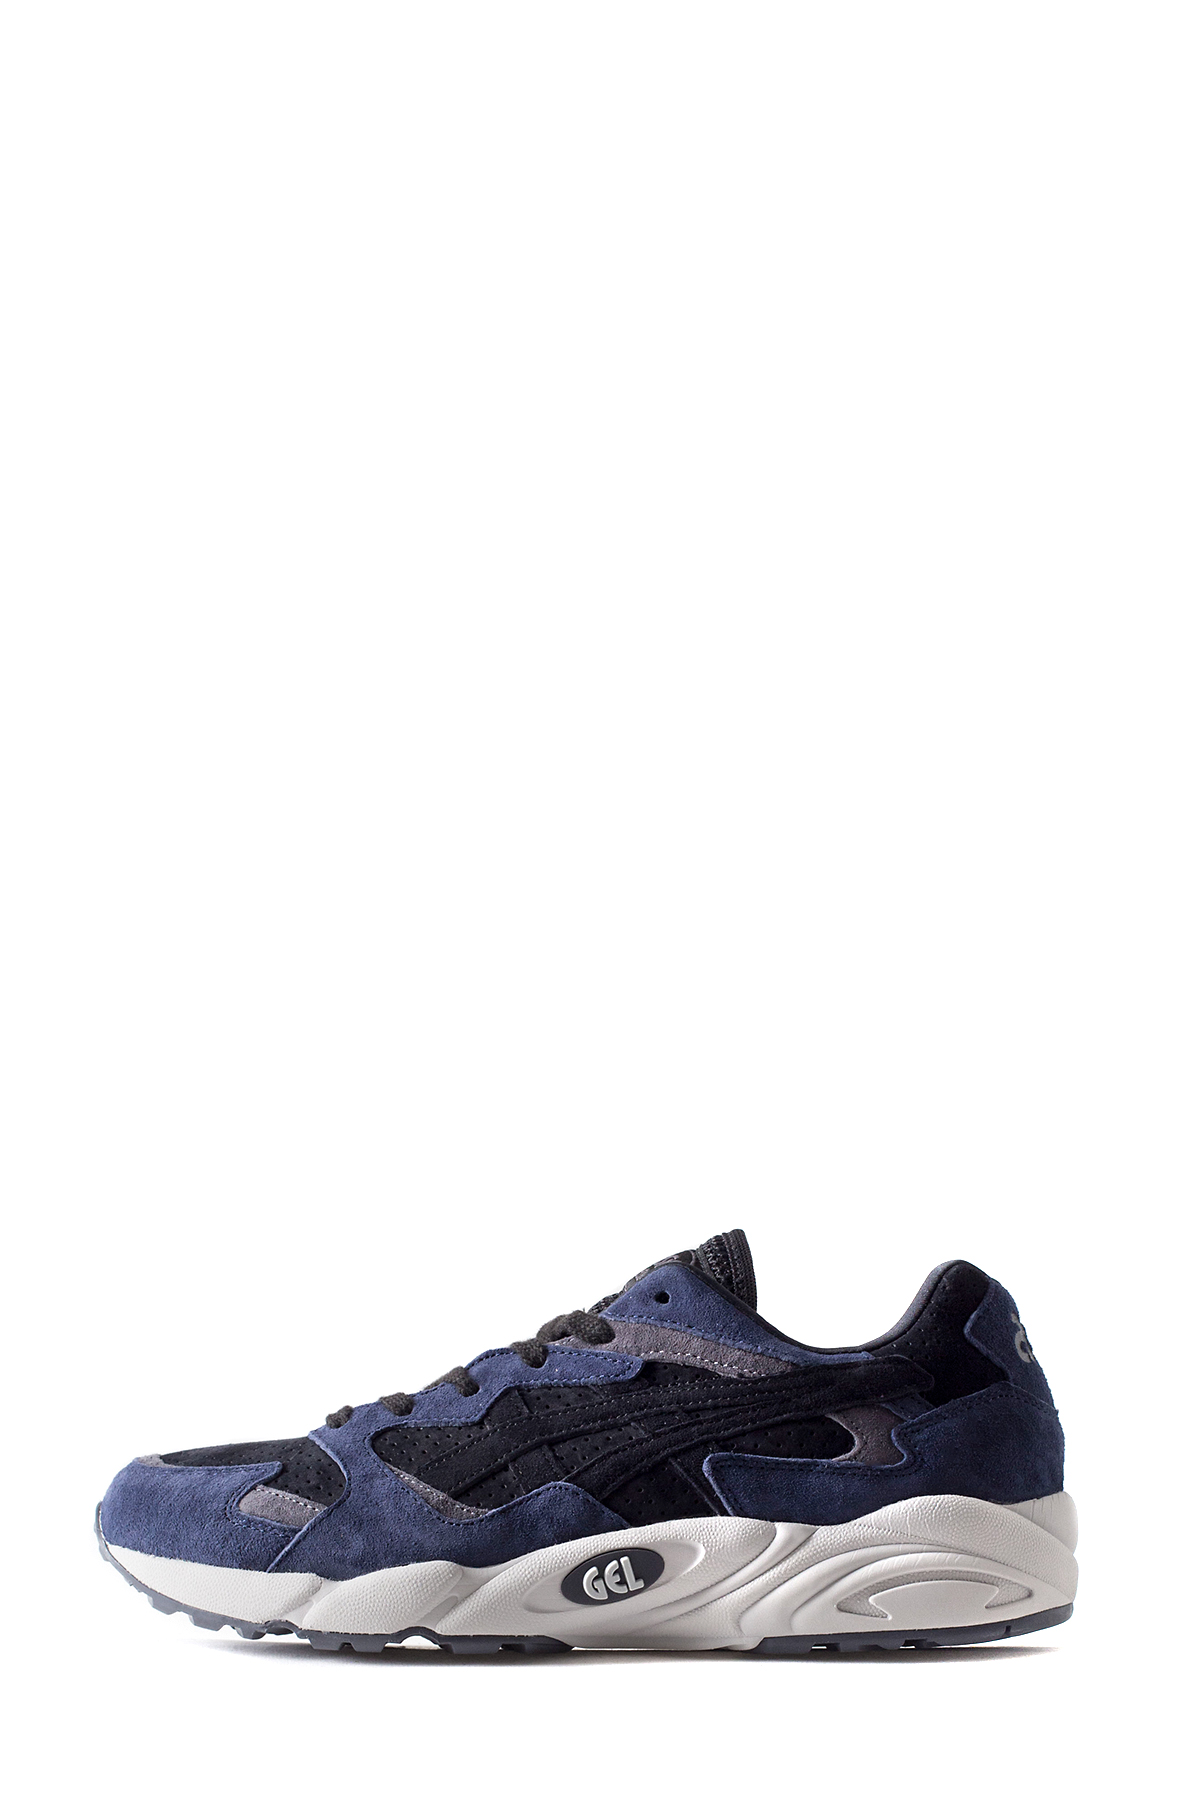 asics tiger : GEL-DIABLO (Black / Black)